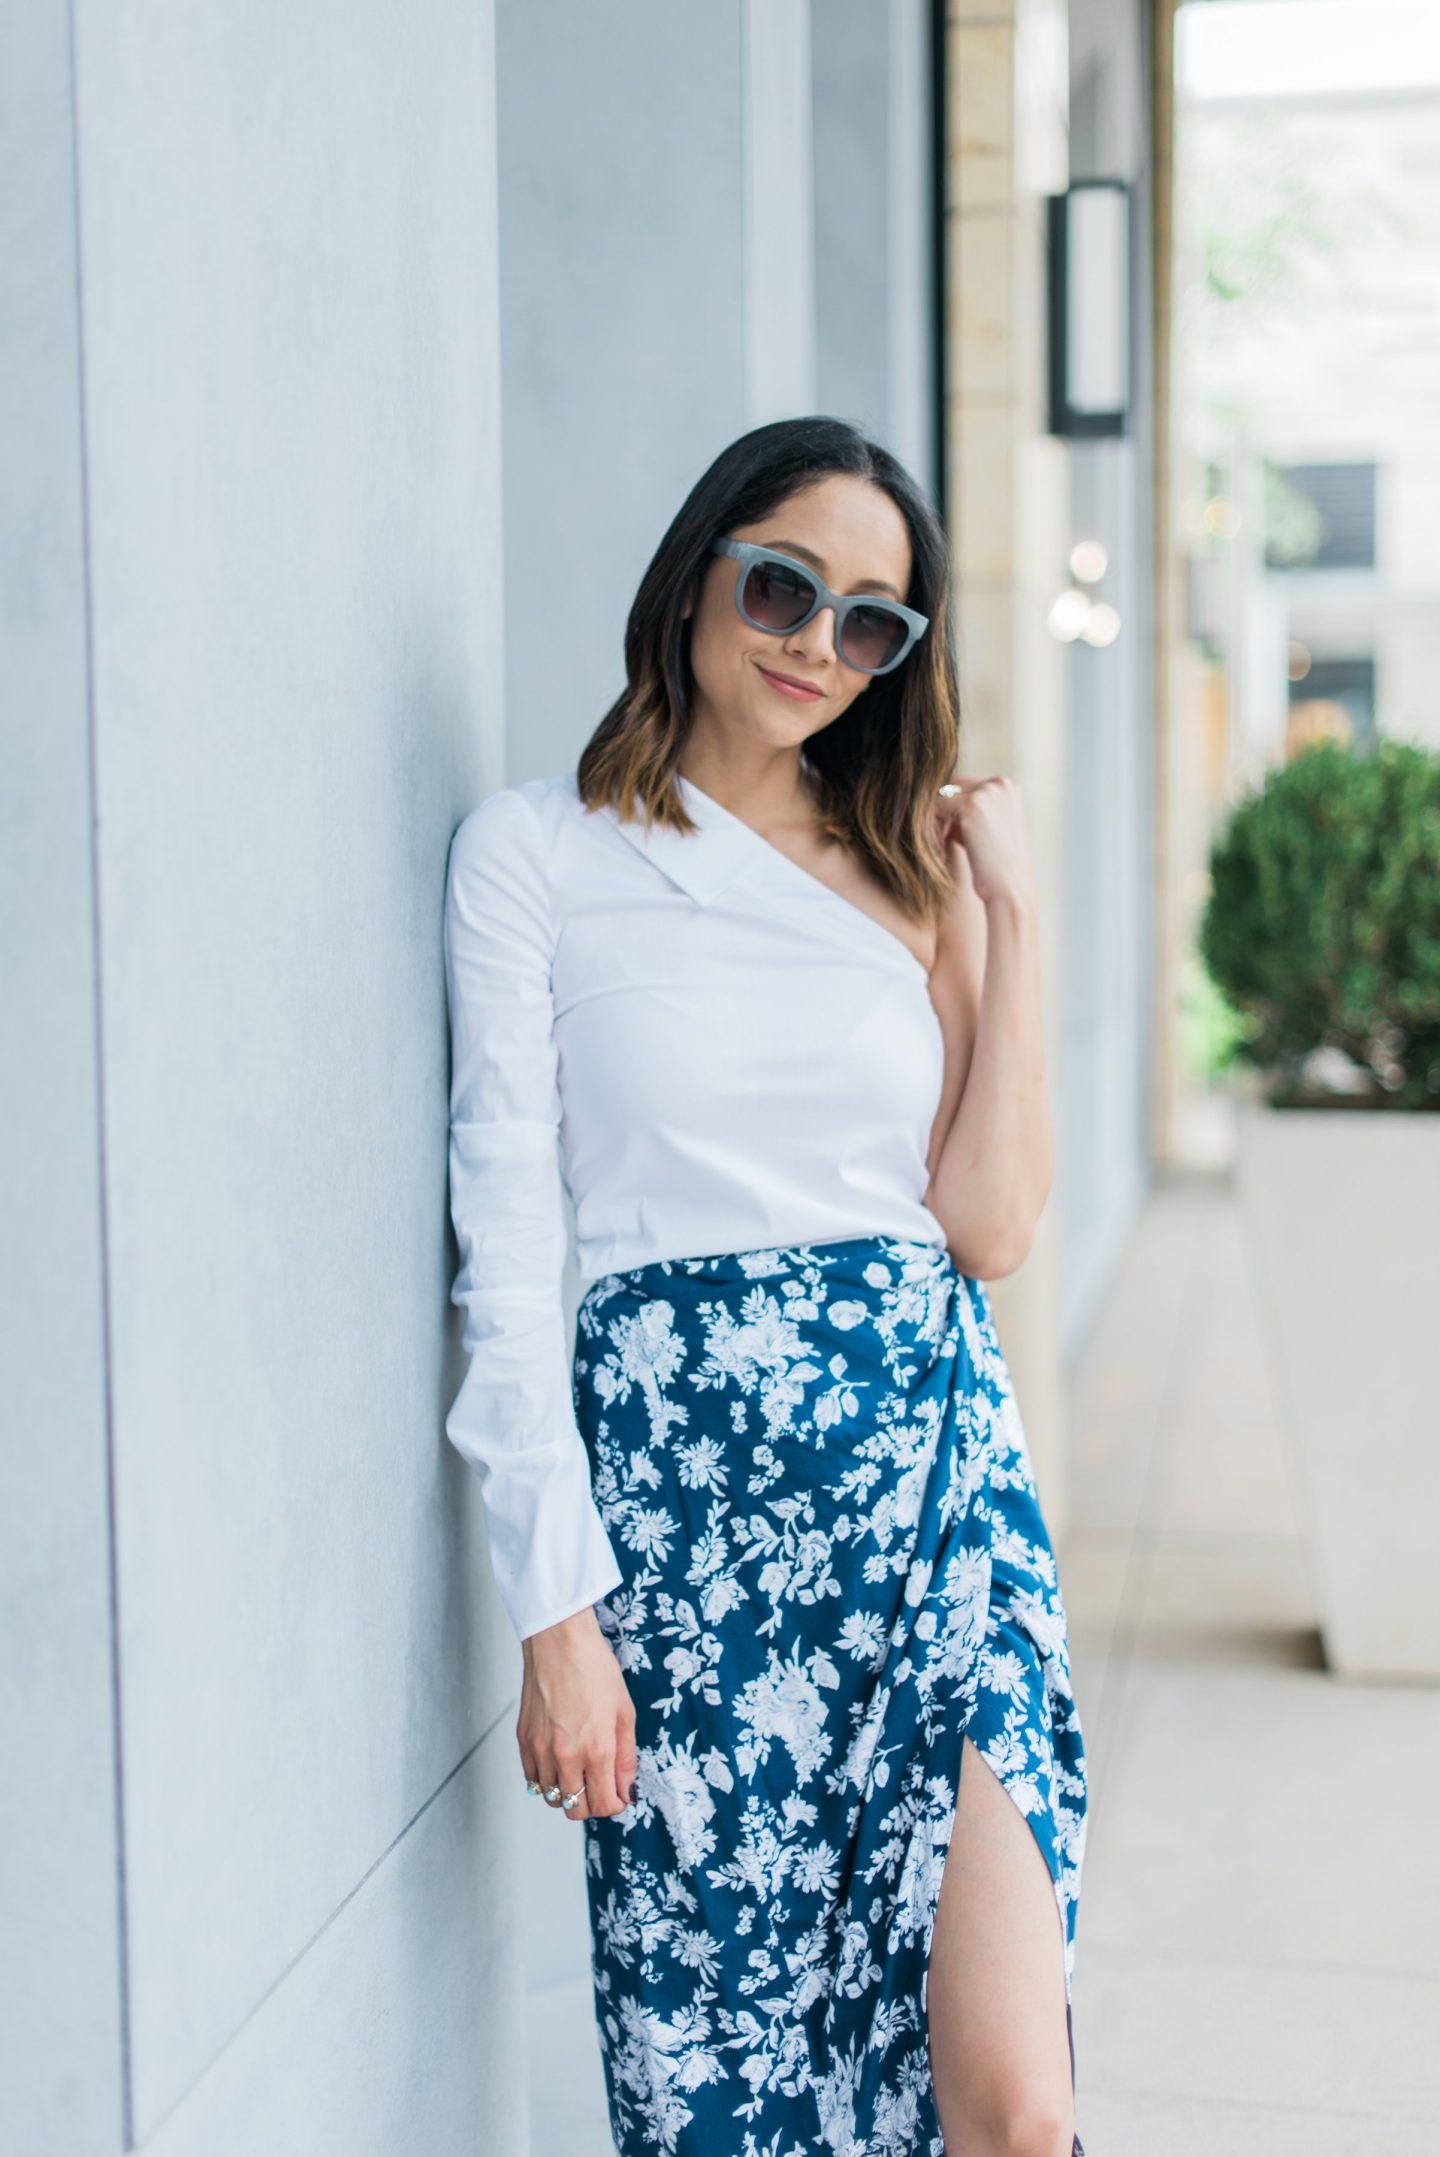 Lifestyle blogger Lilly Beltran of Daily Craving wearing a floral print wrap skirt and one sleeve top